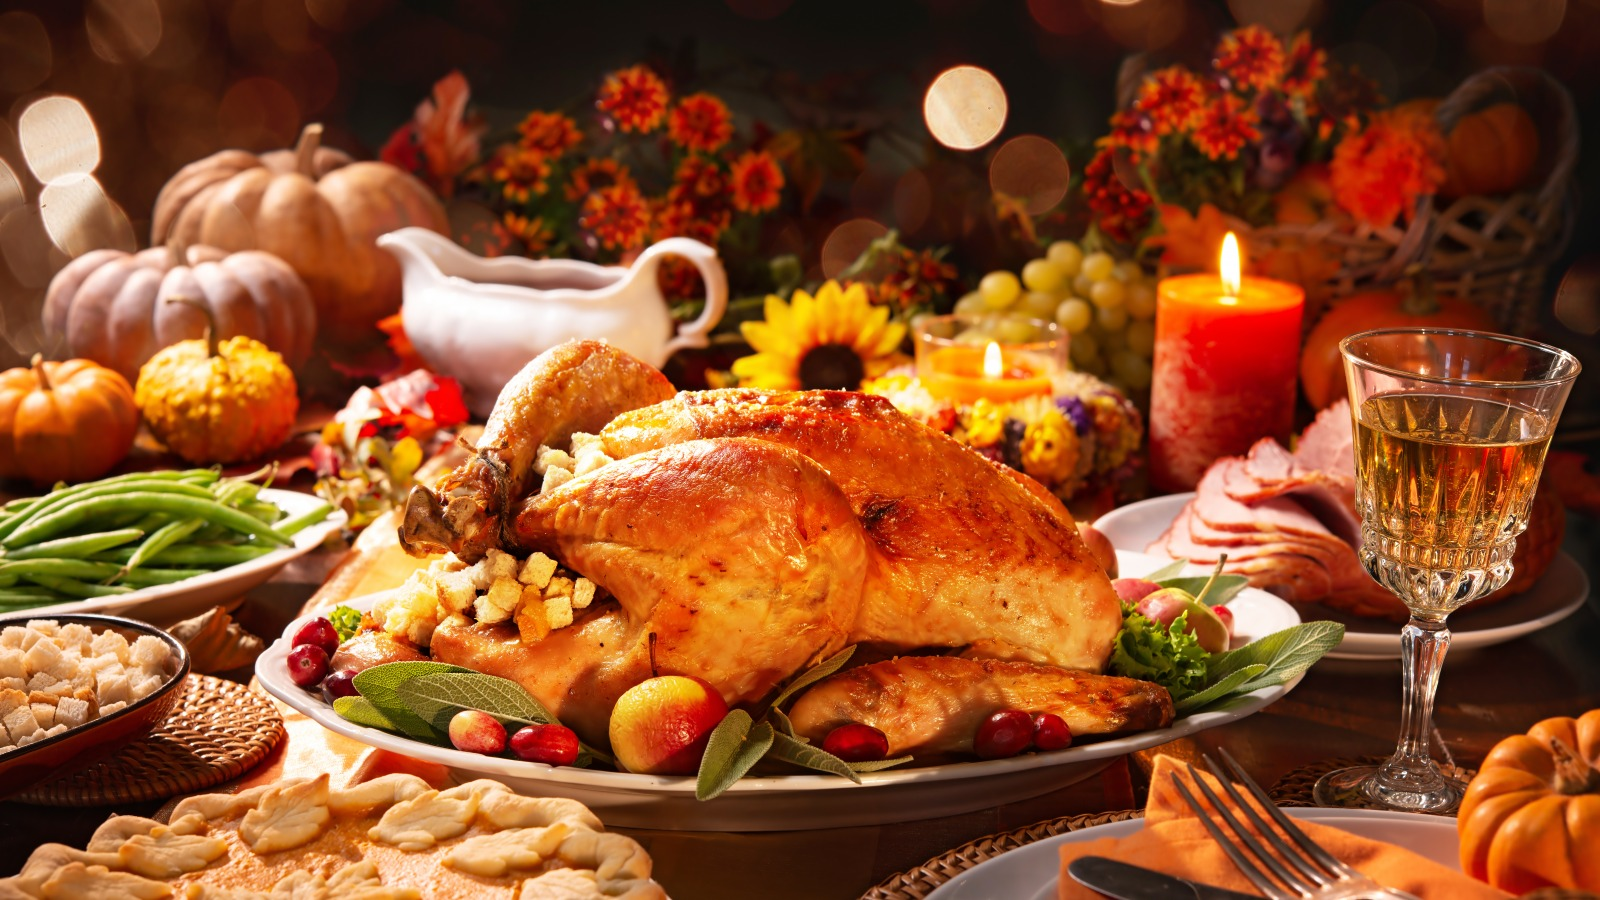 You Can Order Your Entire Thanksgiving Dinner Online From These Retailers